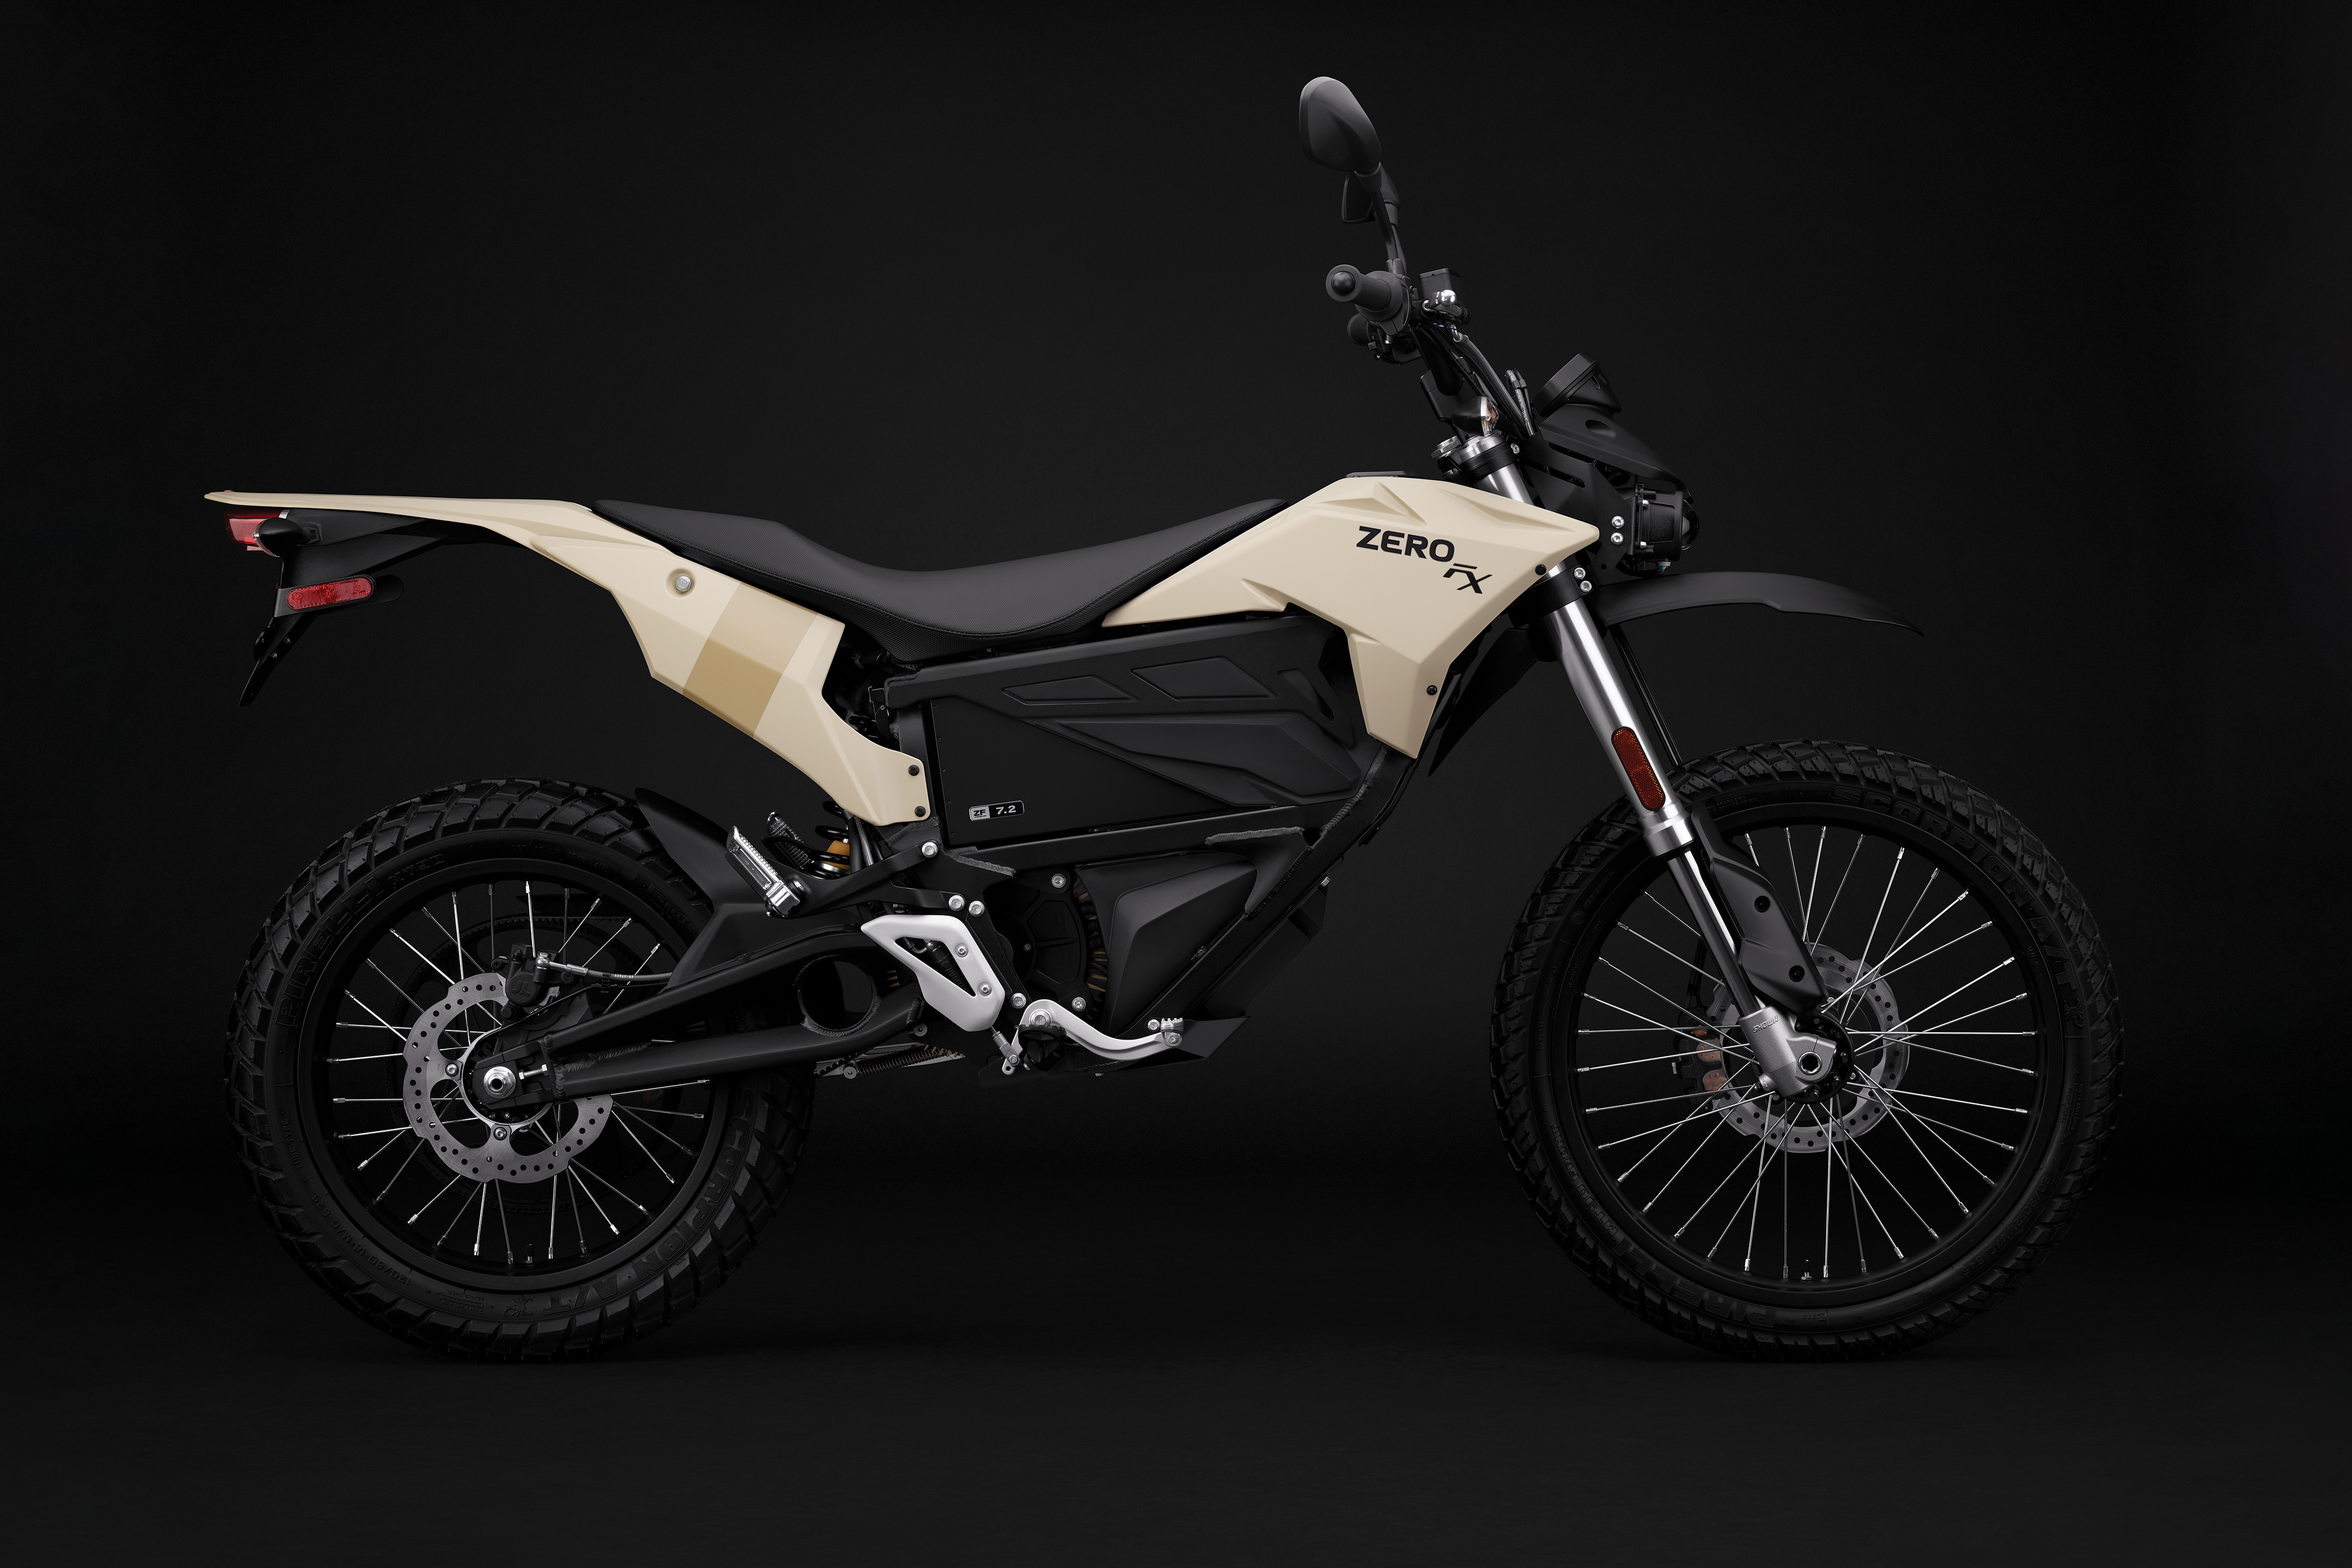 2019 Zero FX Electric Motorcycle: Profile Right